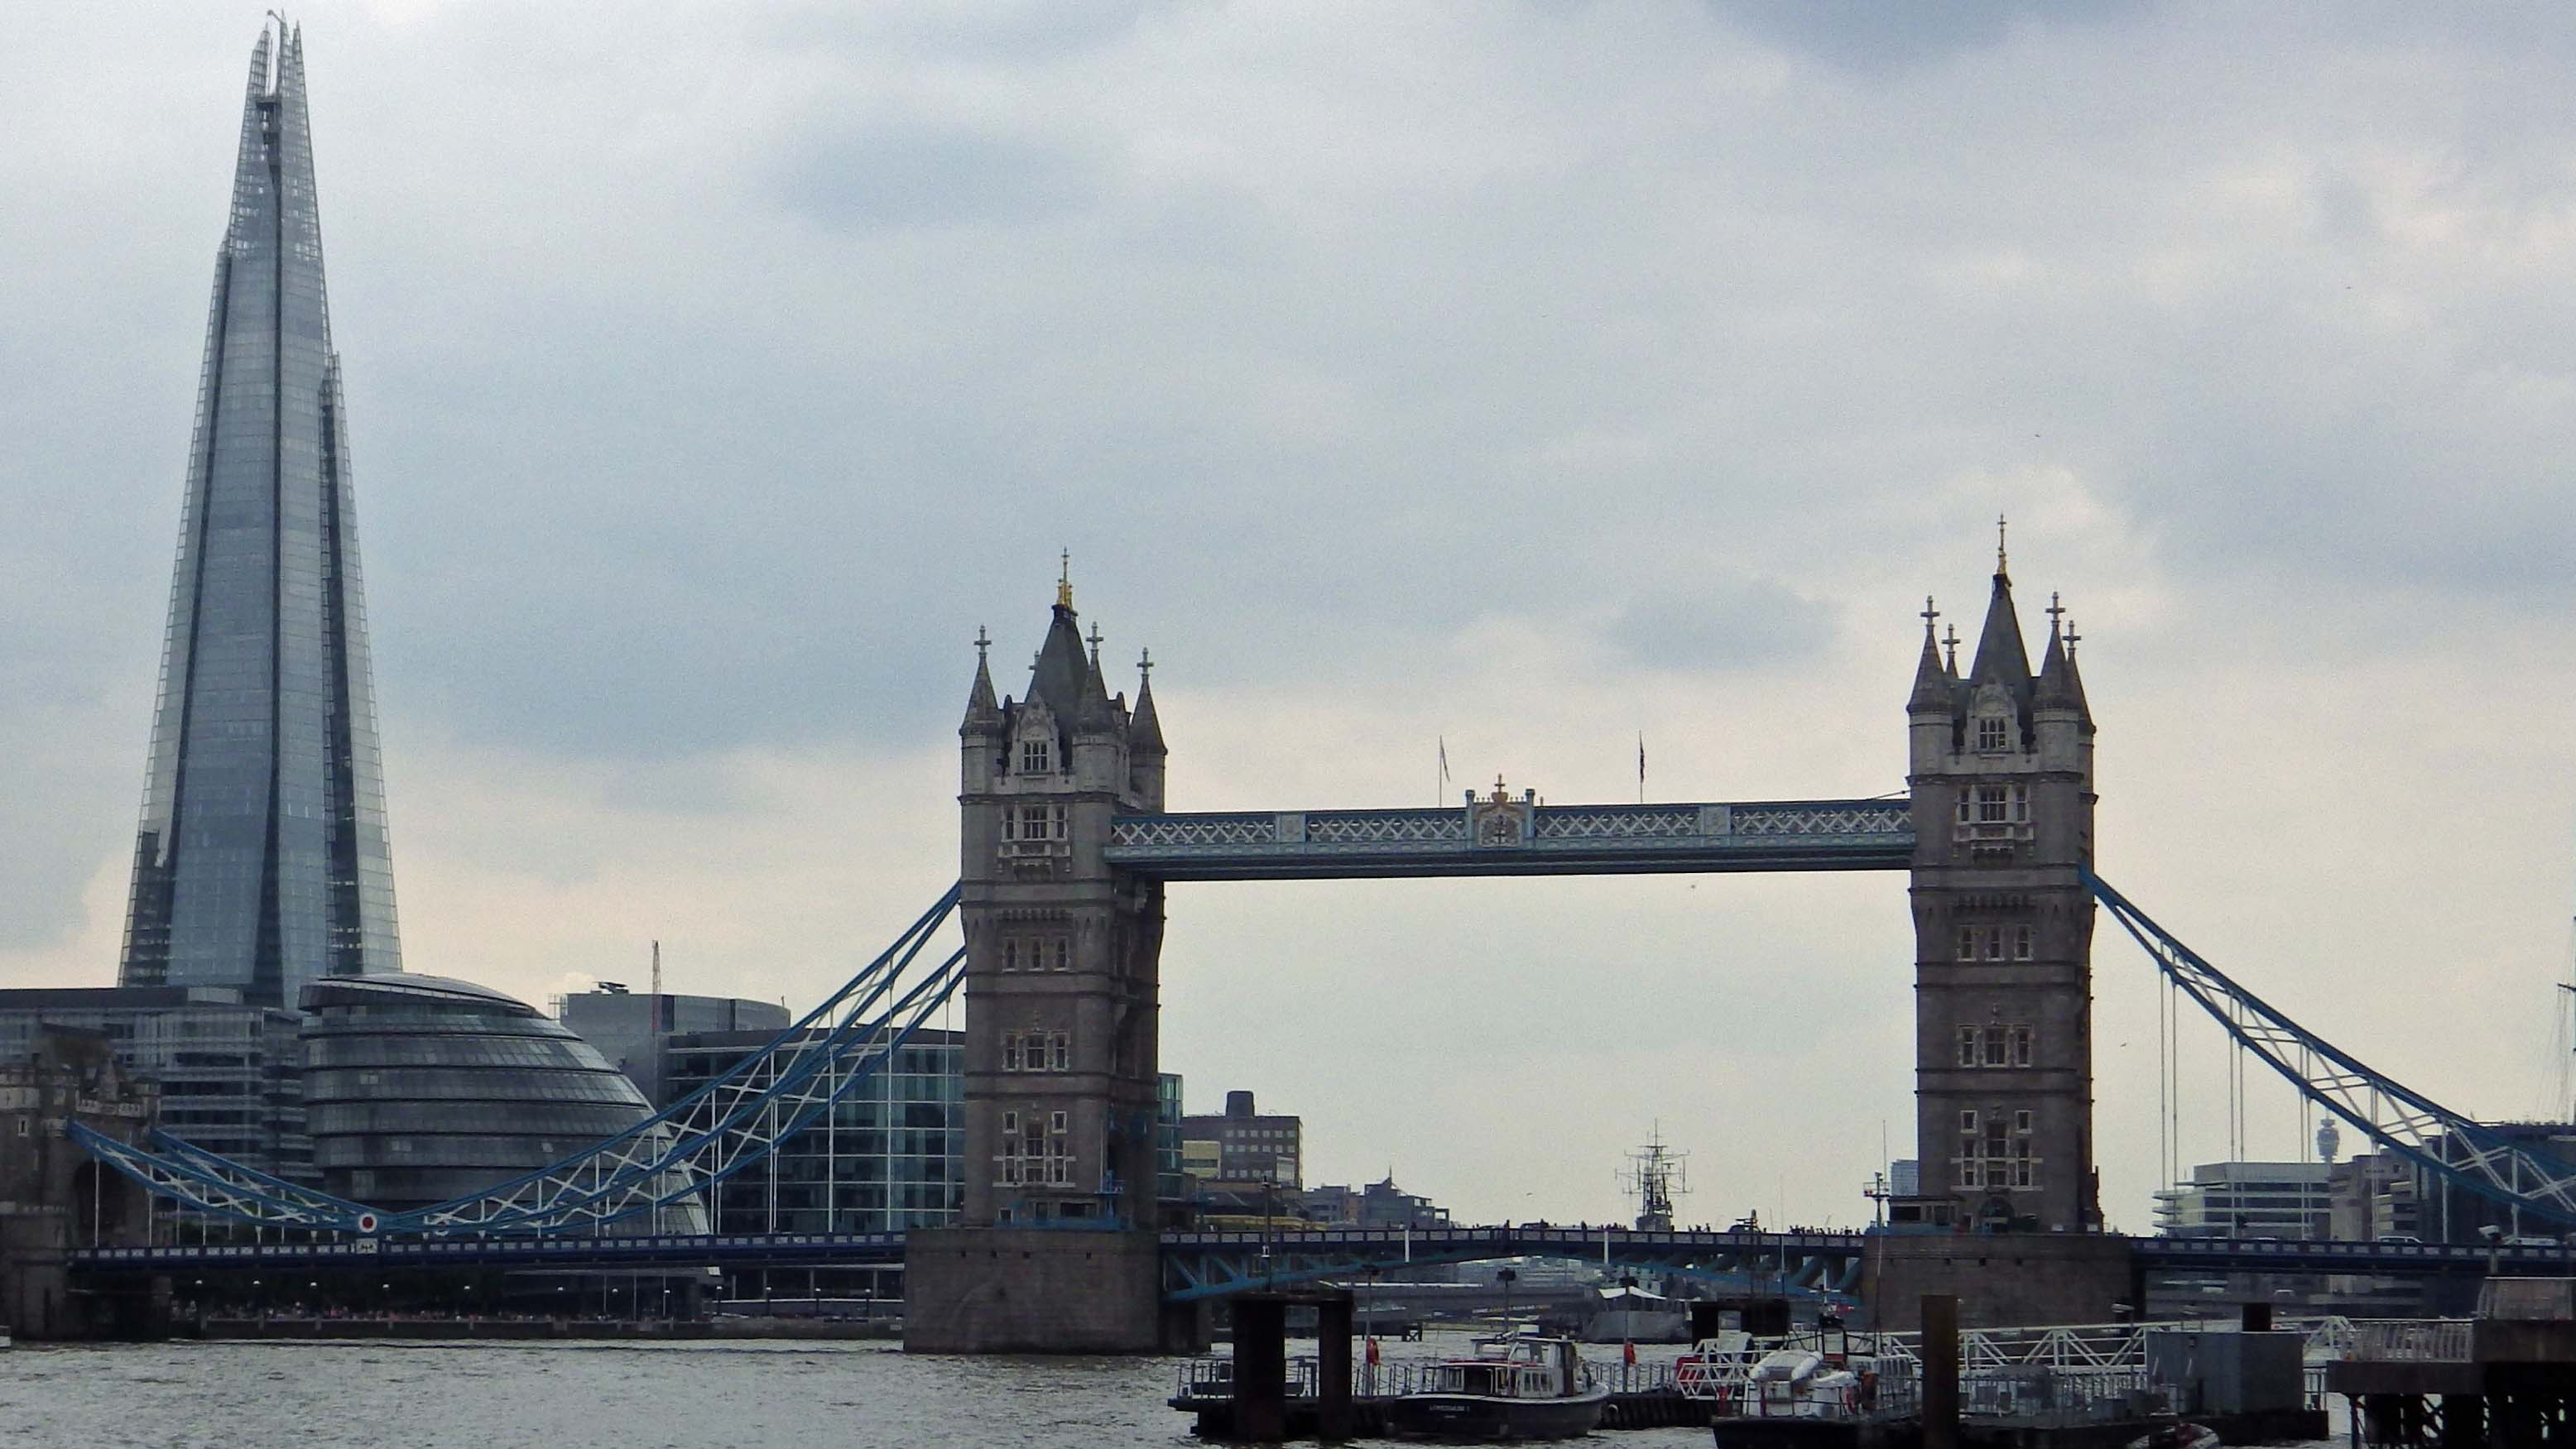 Tower Bridge and Shard